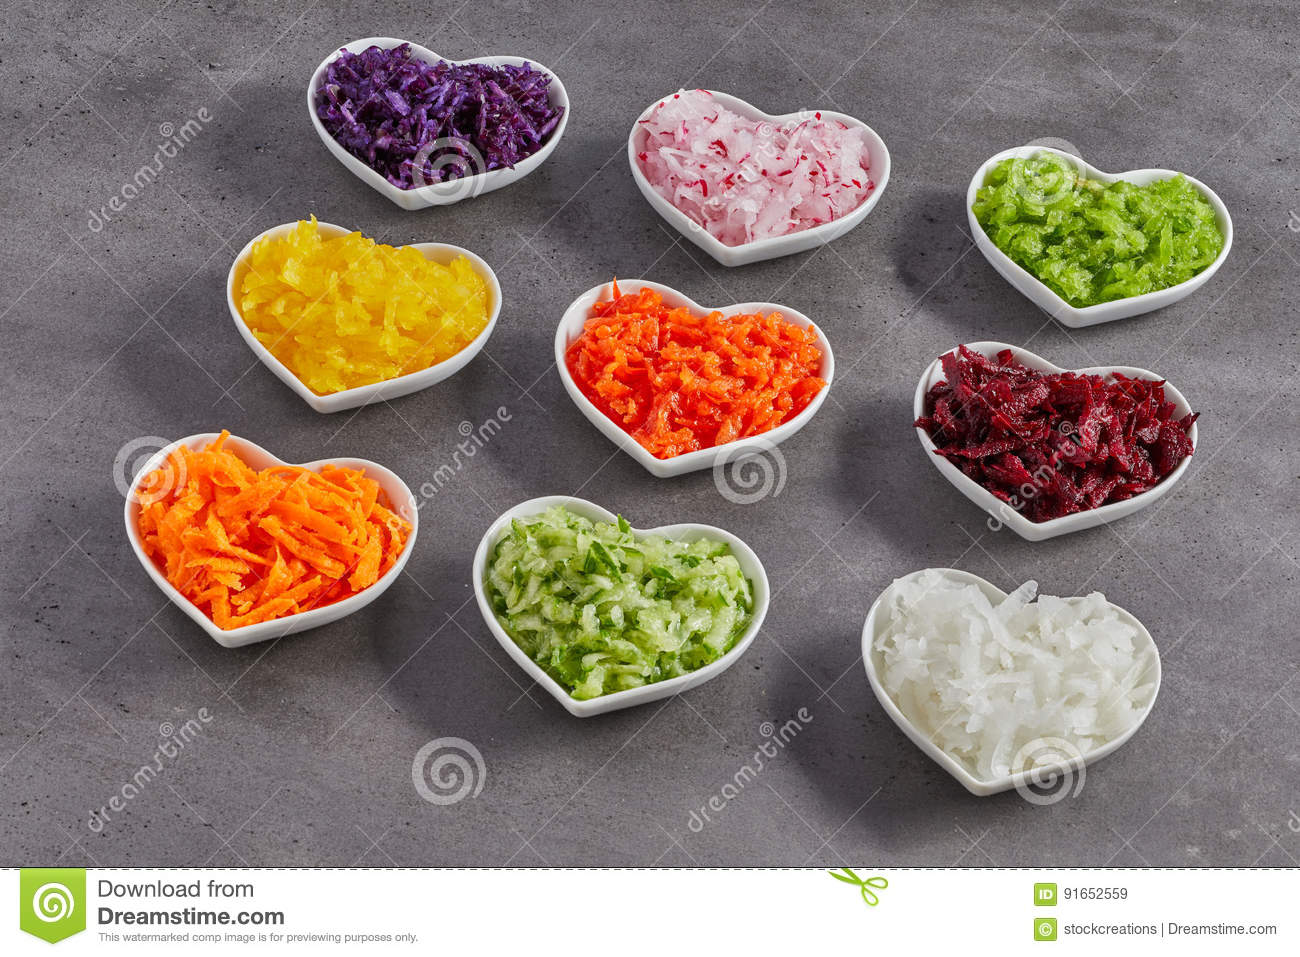 Heart-shaped Bowls With Grated Vegetables Stock Image - Image of ...